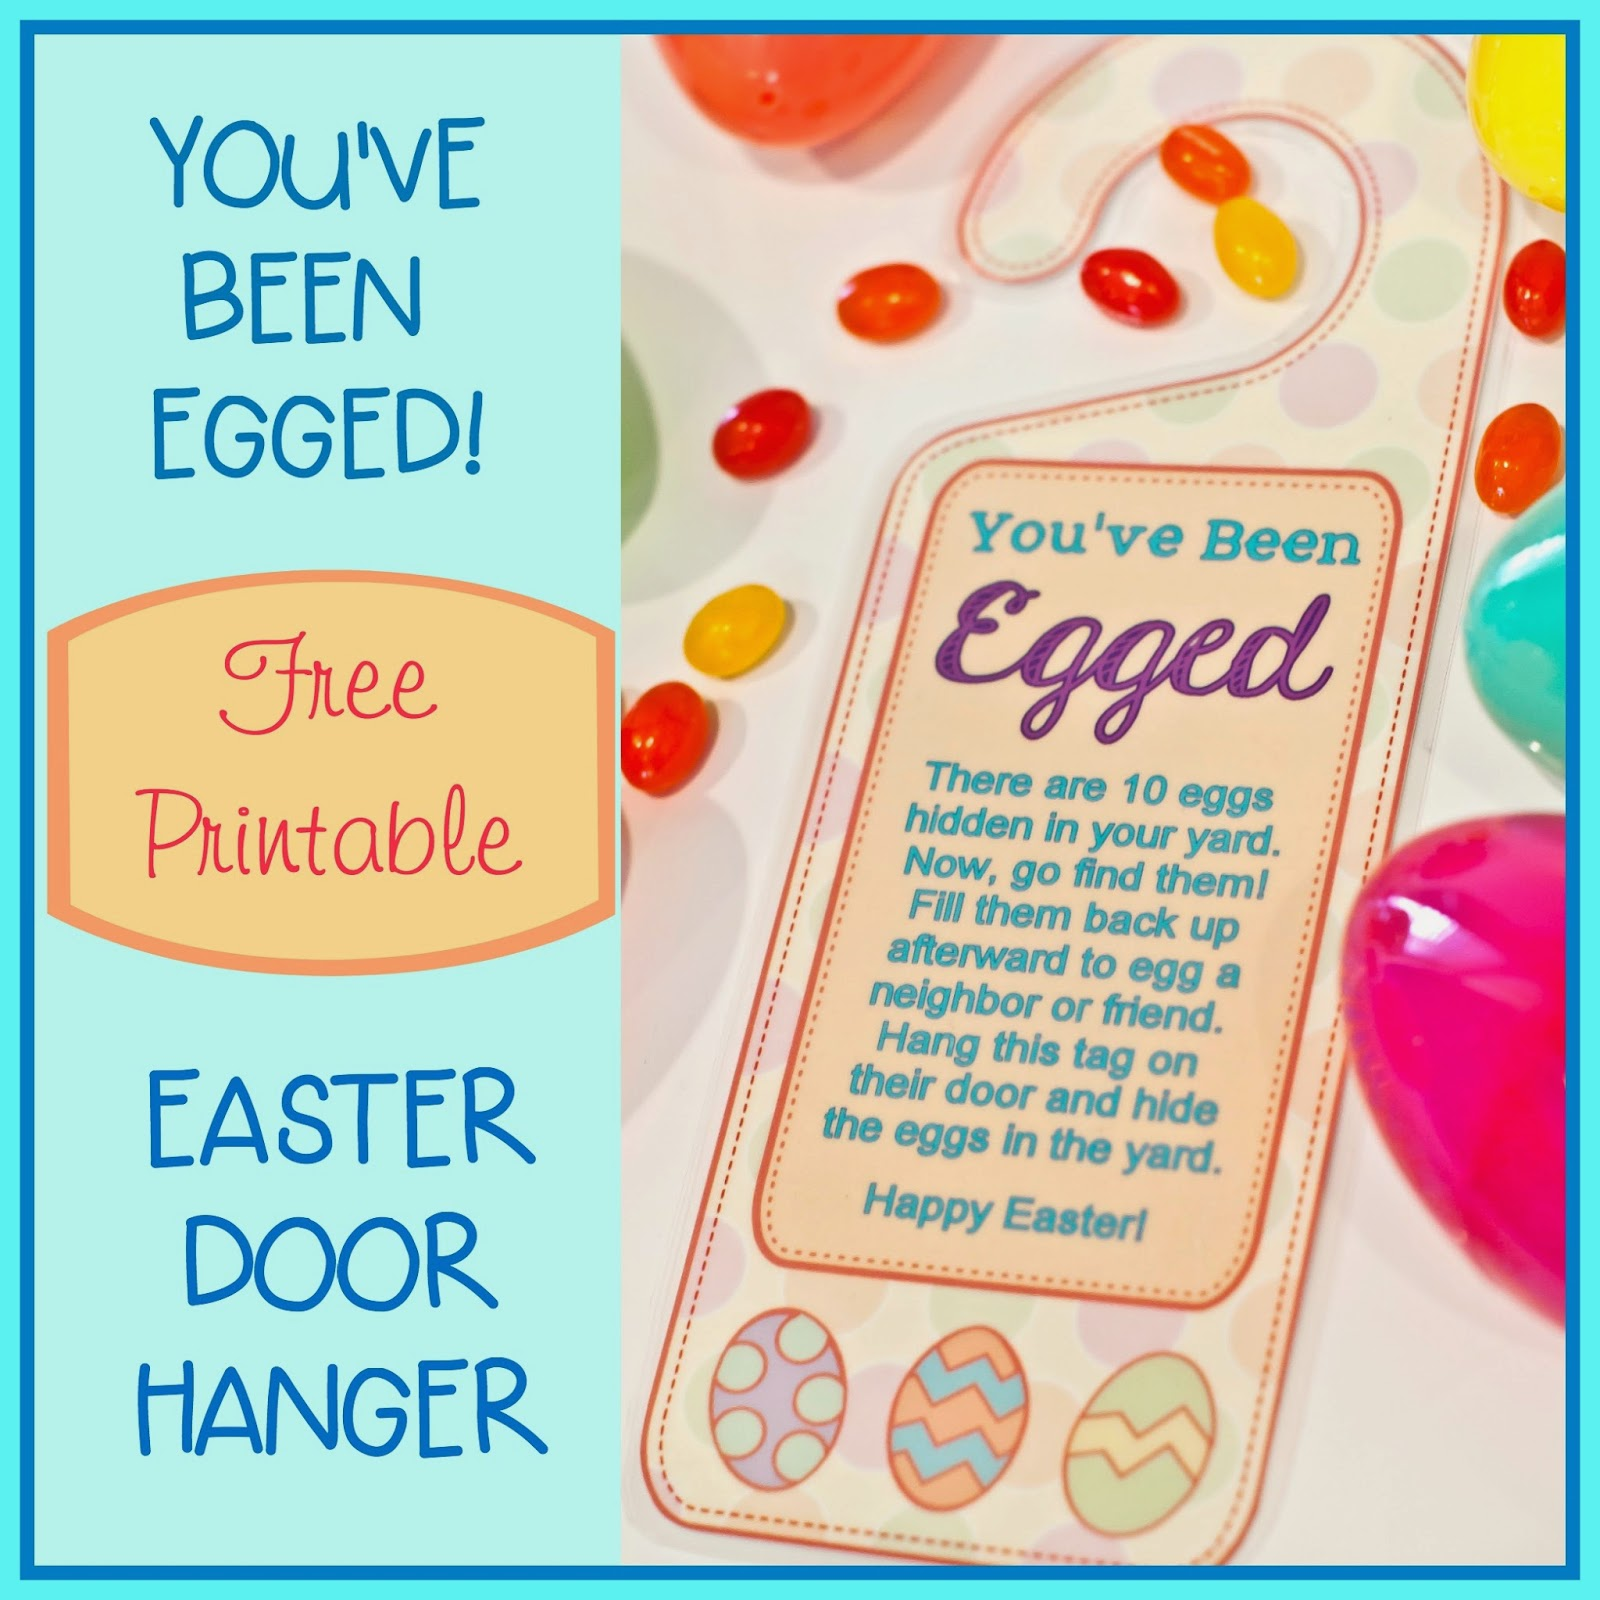 photo relating to You've Been Egged Printable identify Youve Been Egged\u201d Doorway Hanger